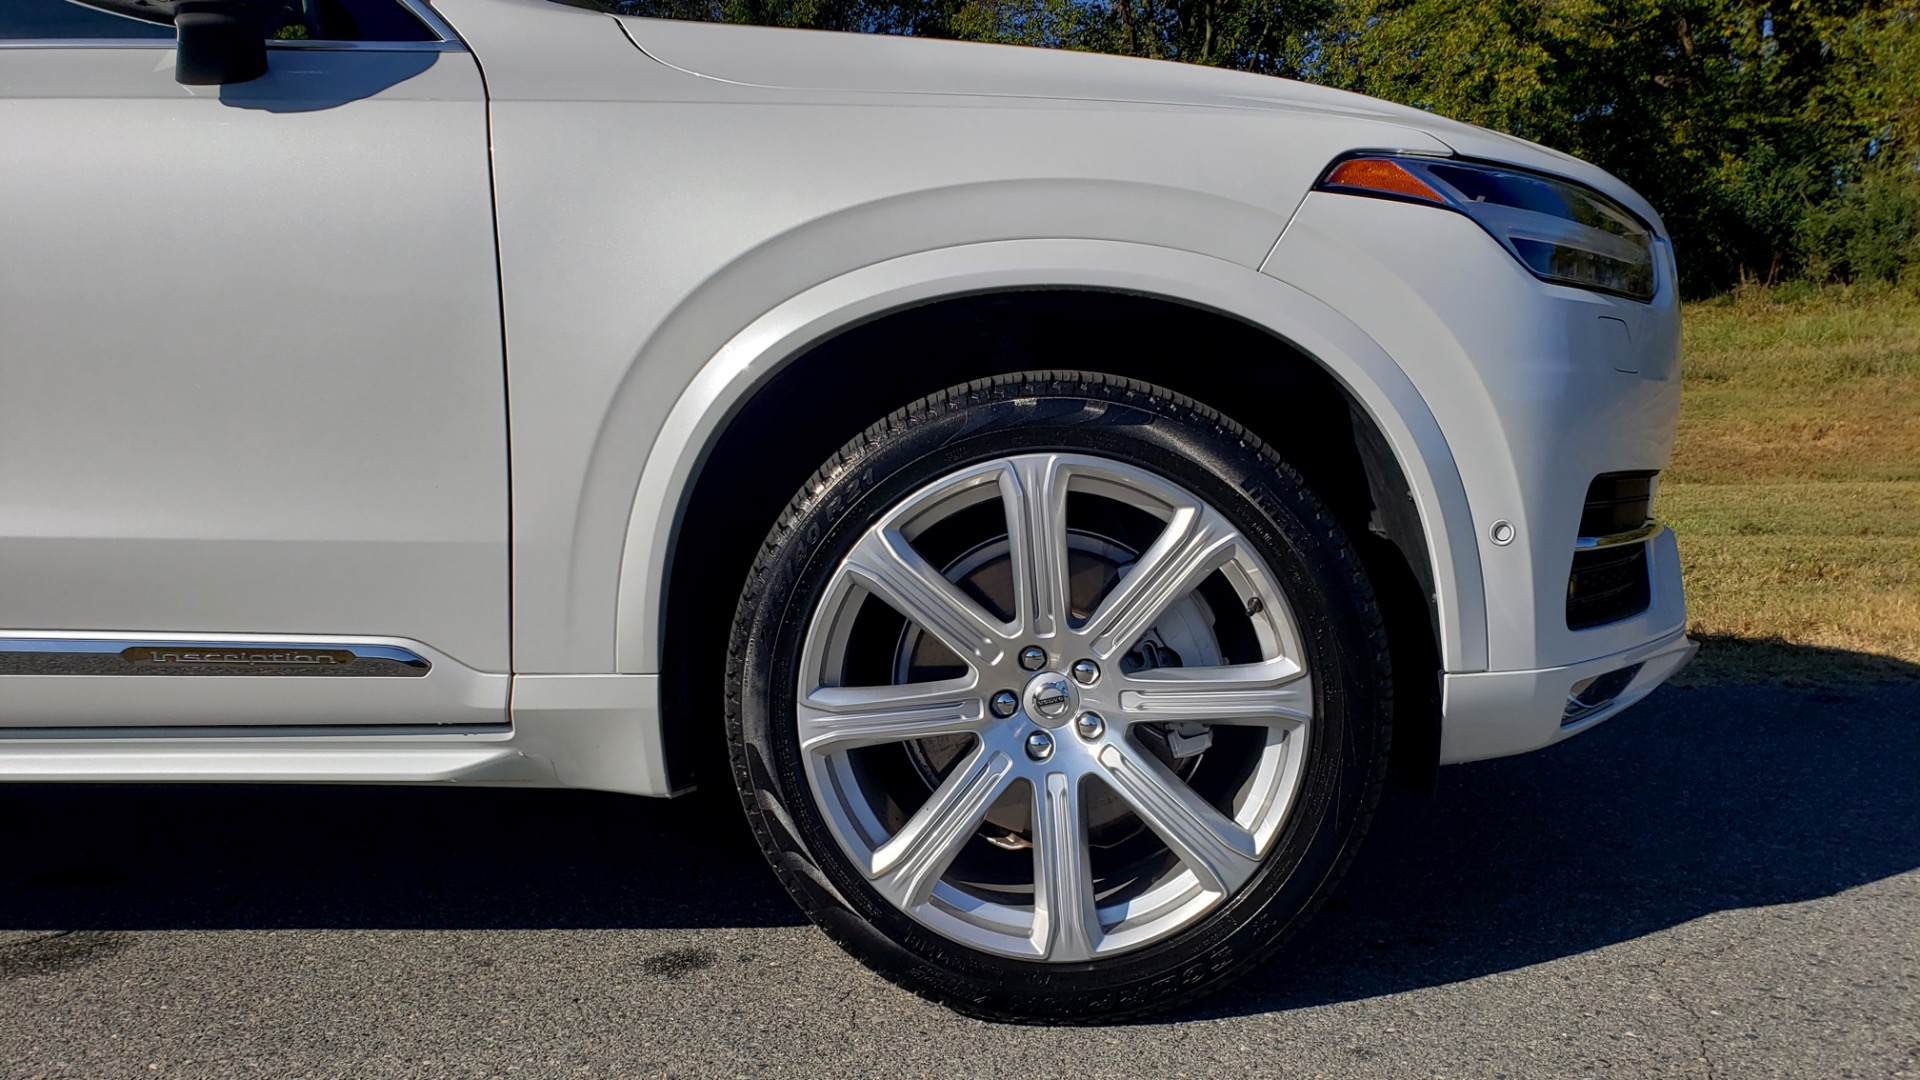 Used 2017 Volvo XC90 INSCRIPTION / AWD / NAV / SUNROOF / 3-ROW / CAMERA for sale Sold at Formula Imports in Charlotte NC 28227 19